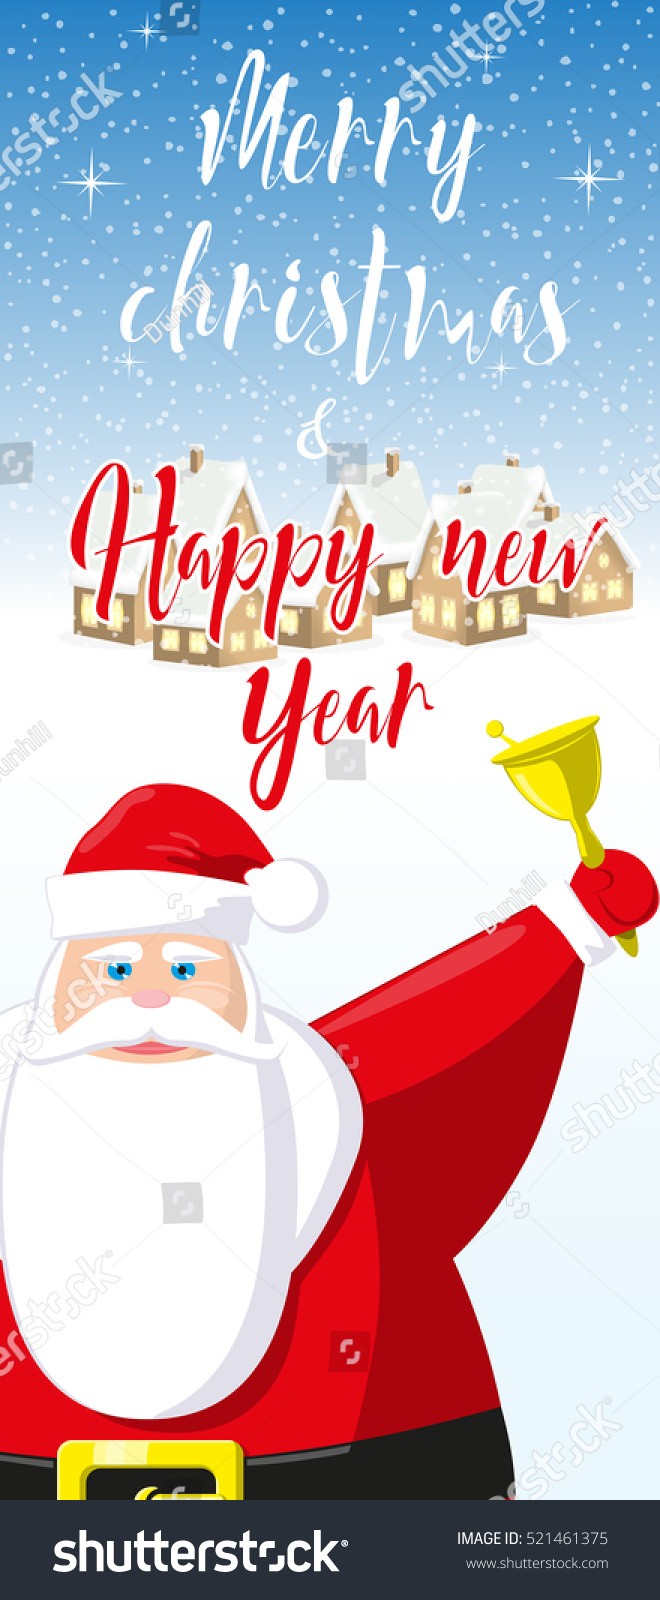 merry christmas and happy new year banner cute santa claus with bell on background small